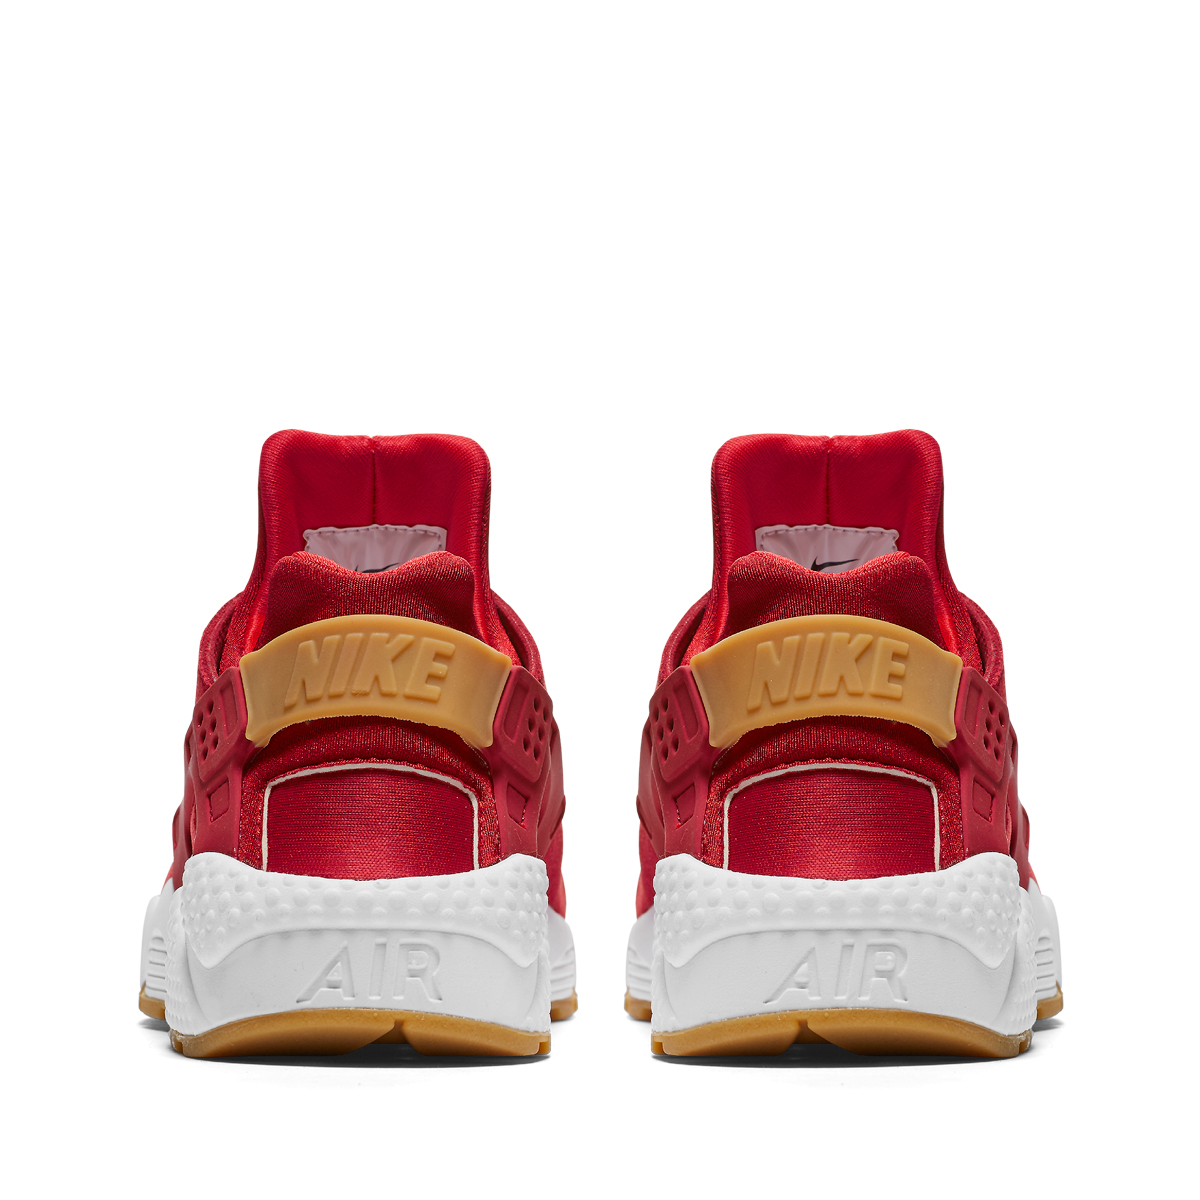 c9cab63ac0006 NIKE WMNS AIR HUARACHE RUN SD (ナイキウィメンズエアハラチラン SD) GYM RED GYM RED-SPEED RED  18SP-I